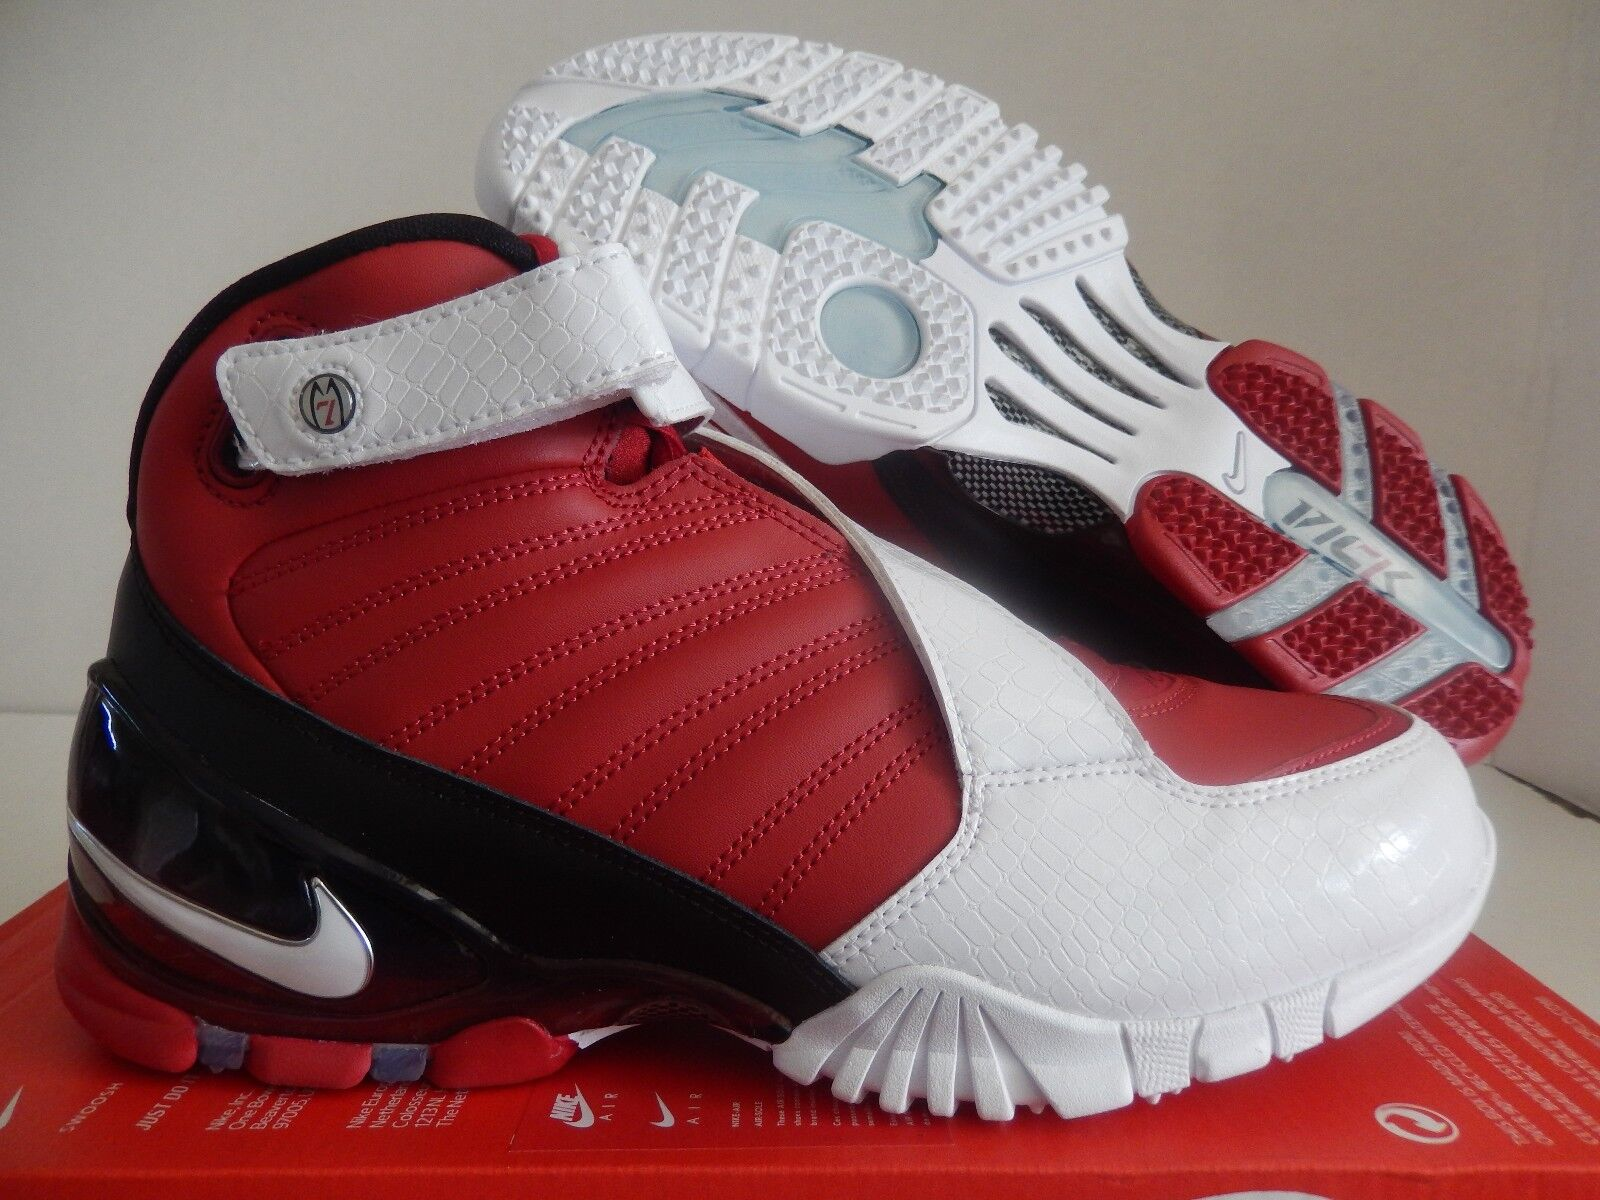 NIKE ZOOM VICK III 3 VARSITY RED-WHITE-BLACK SZ 7 [832698-600]